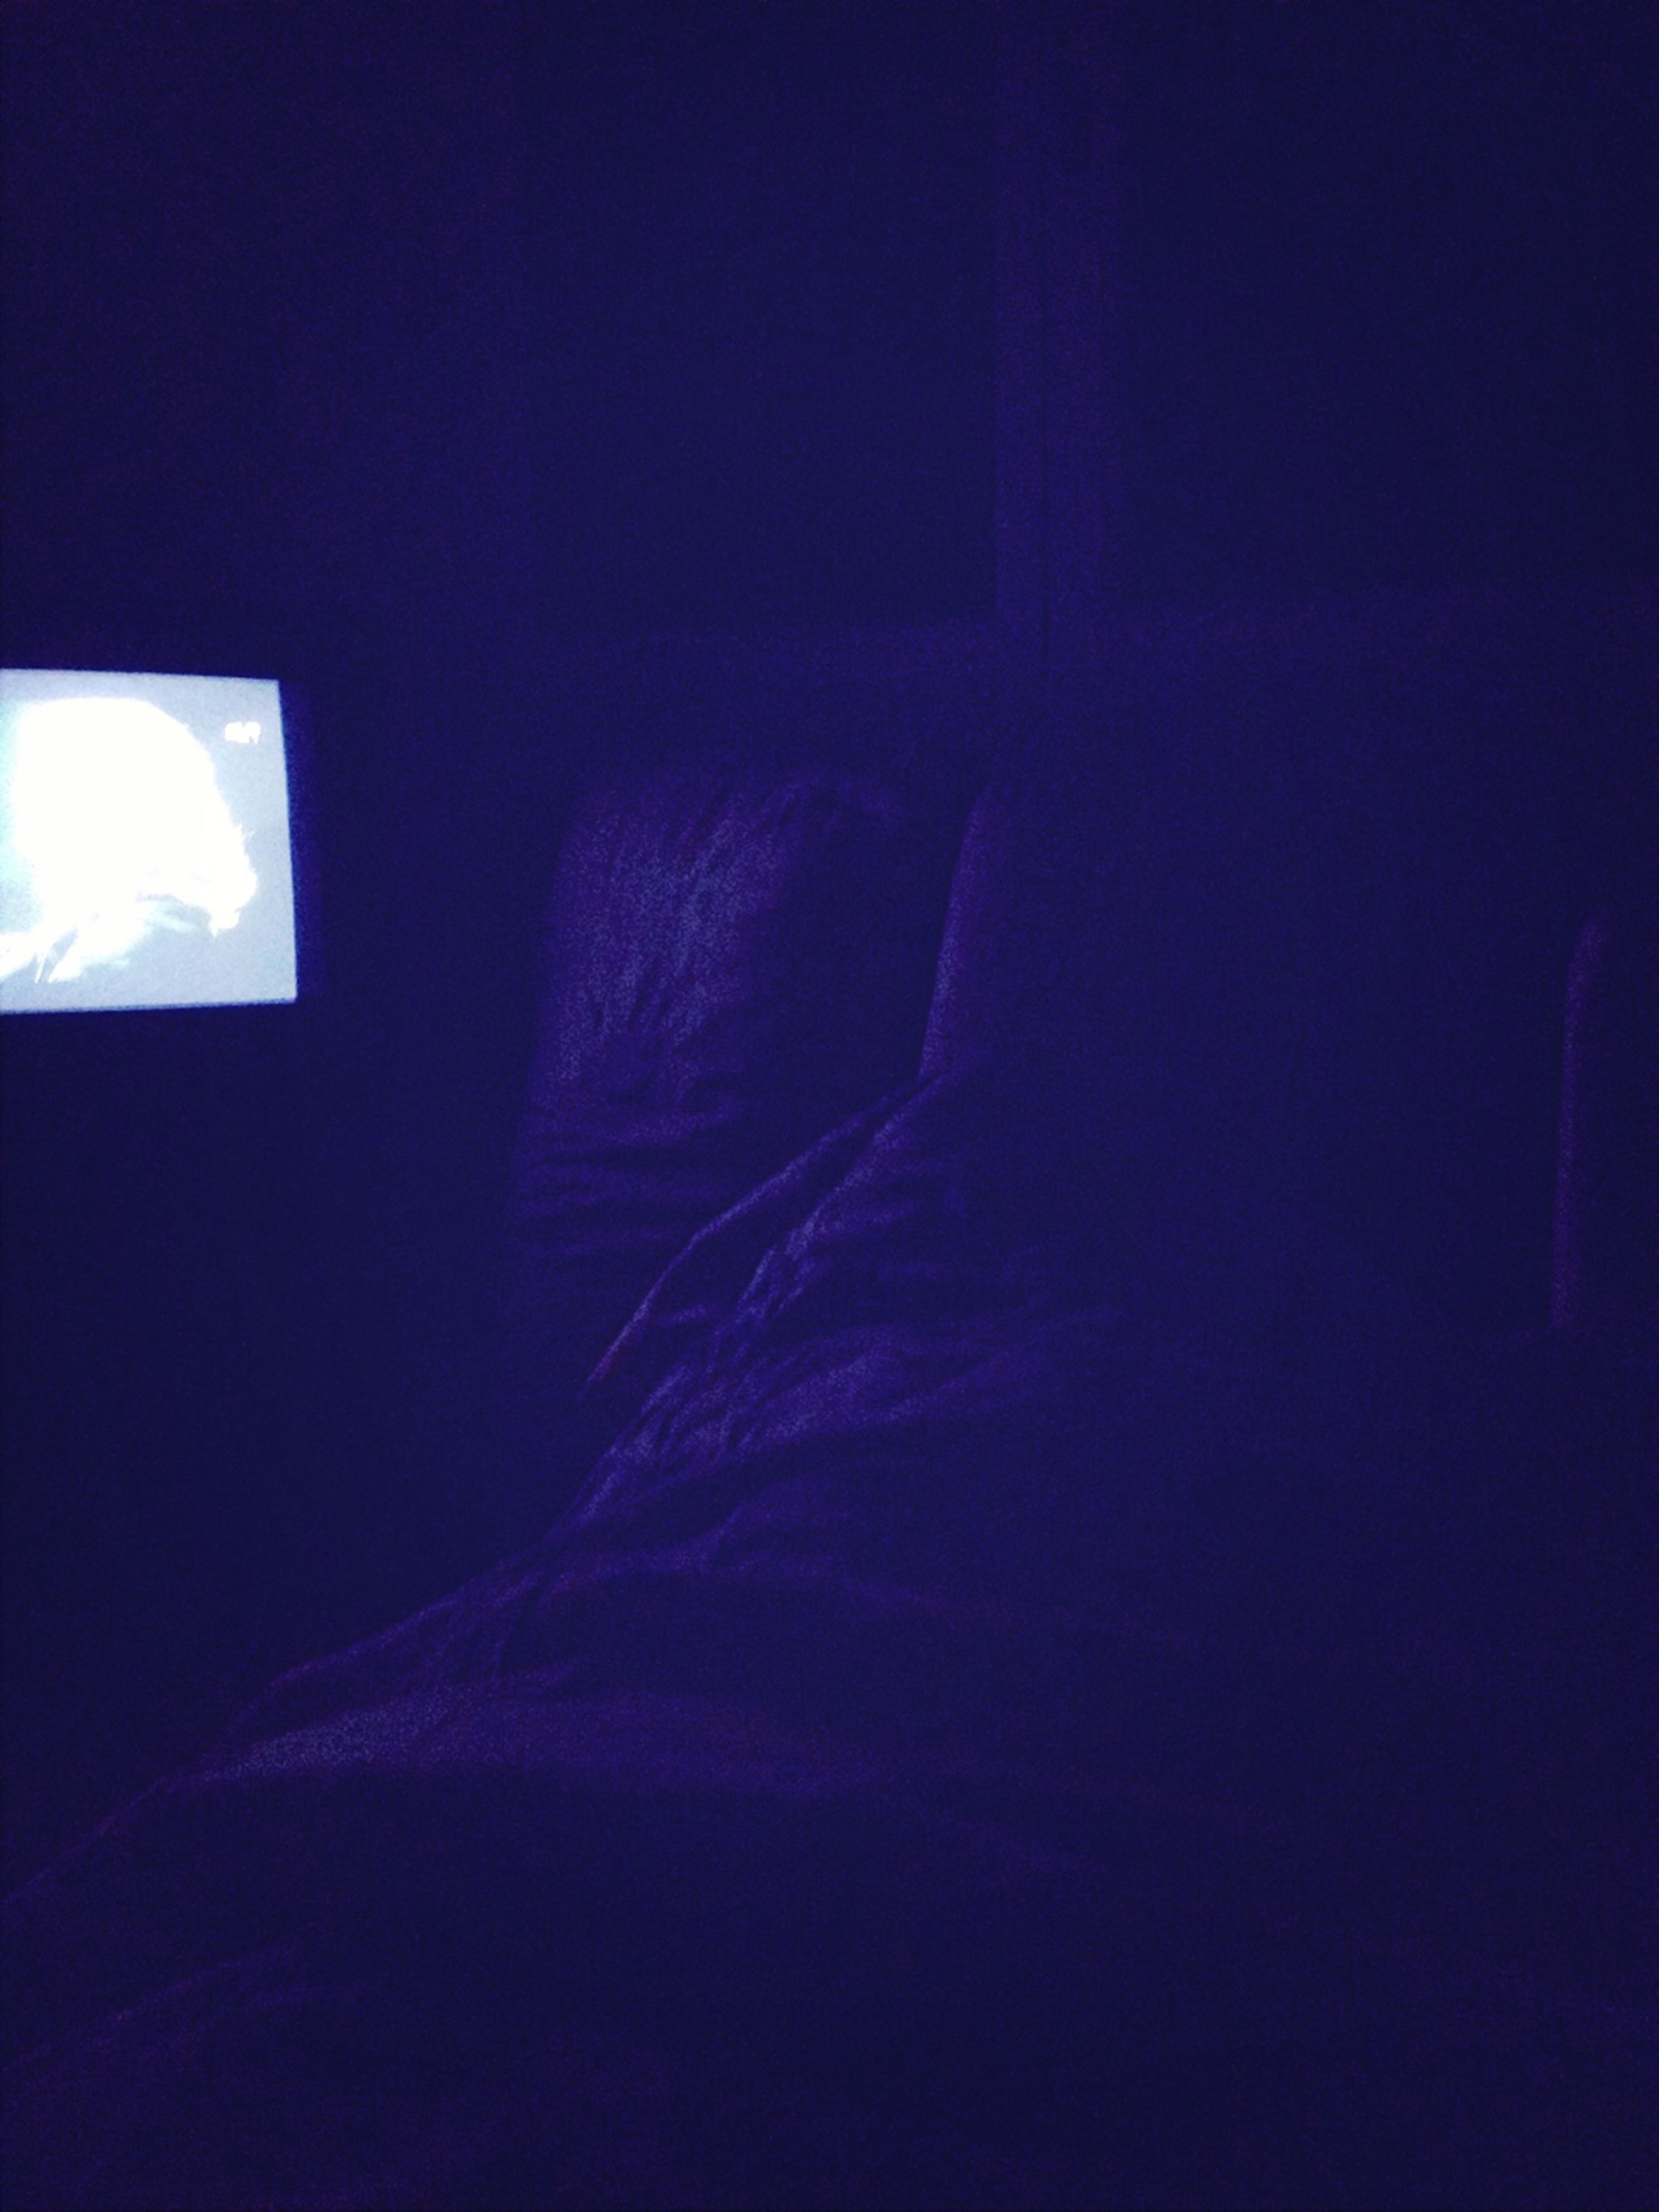 indoors, copy space, dark, blue, bed, sunlight, bedroom, home interior, window, light - natural phenomenon, no people, illuminated, shadow, absence, curtain, wall - building feature, darkroom, room, day, empty